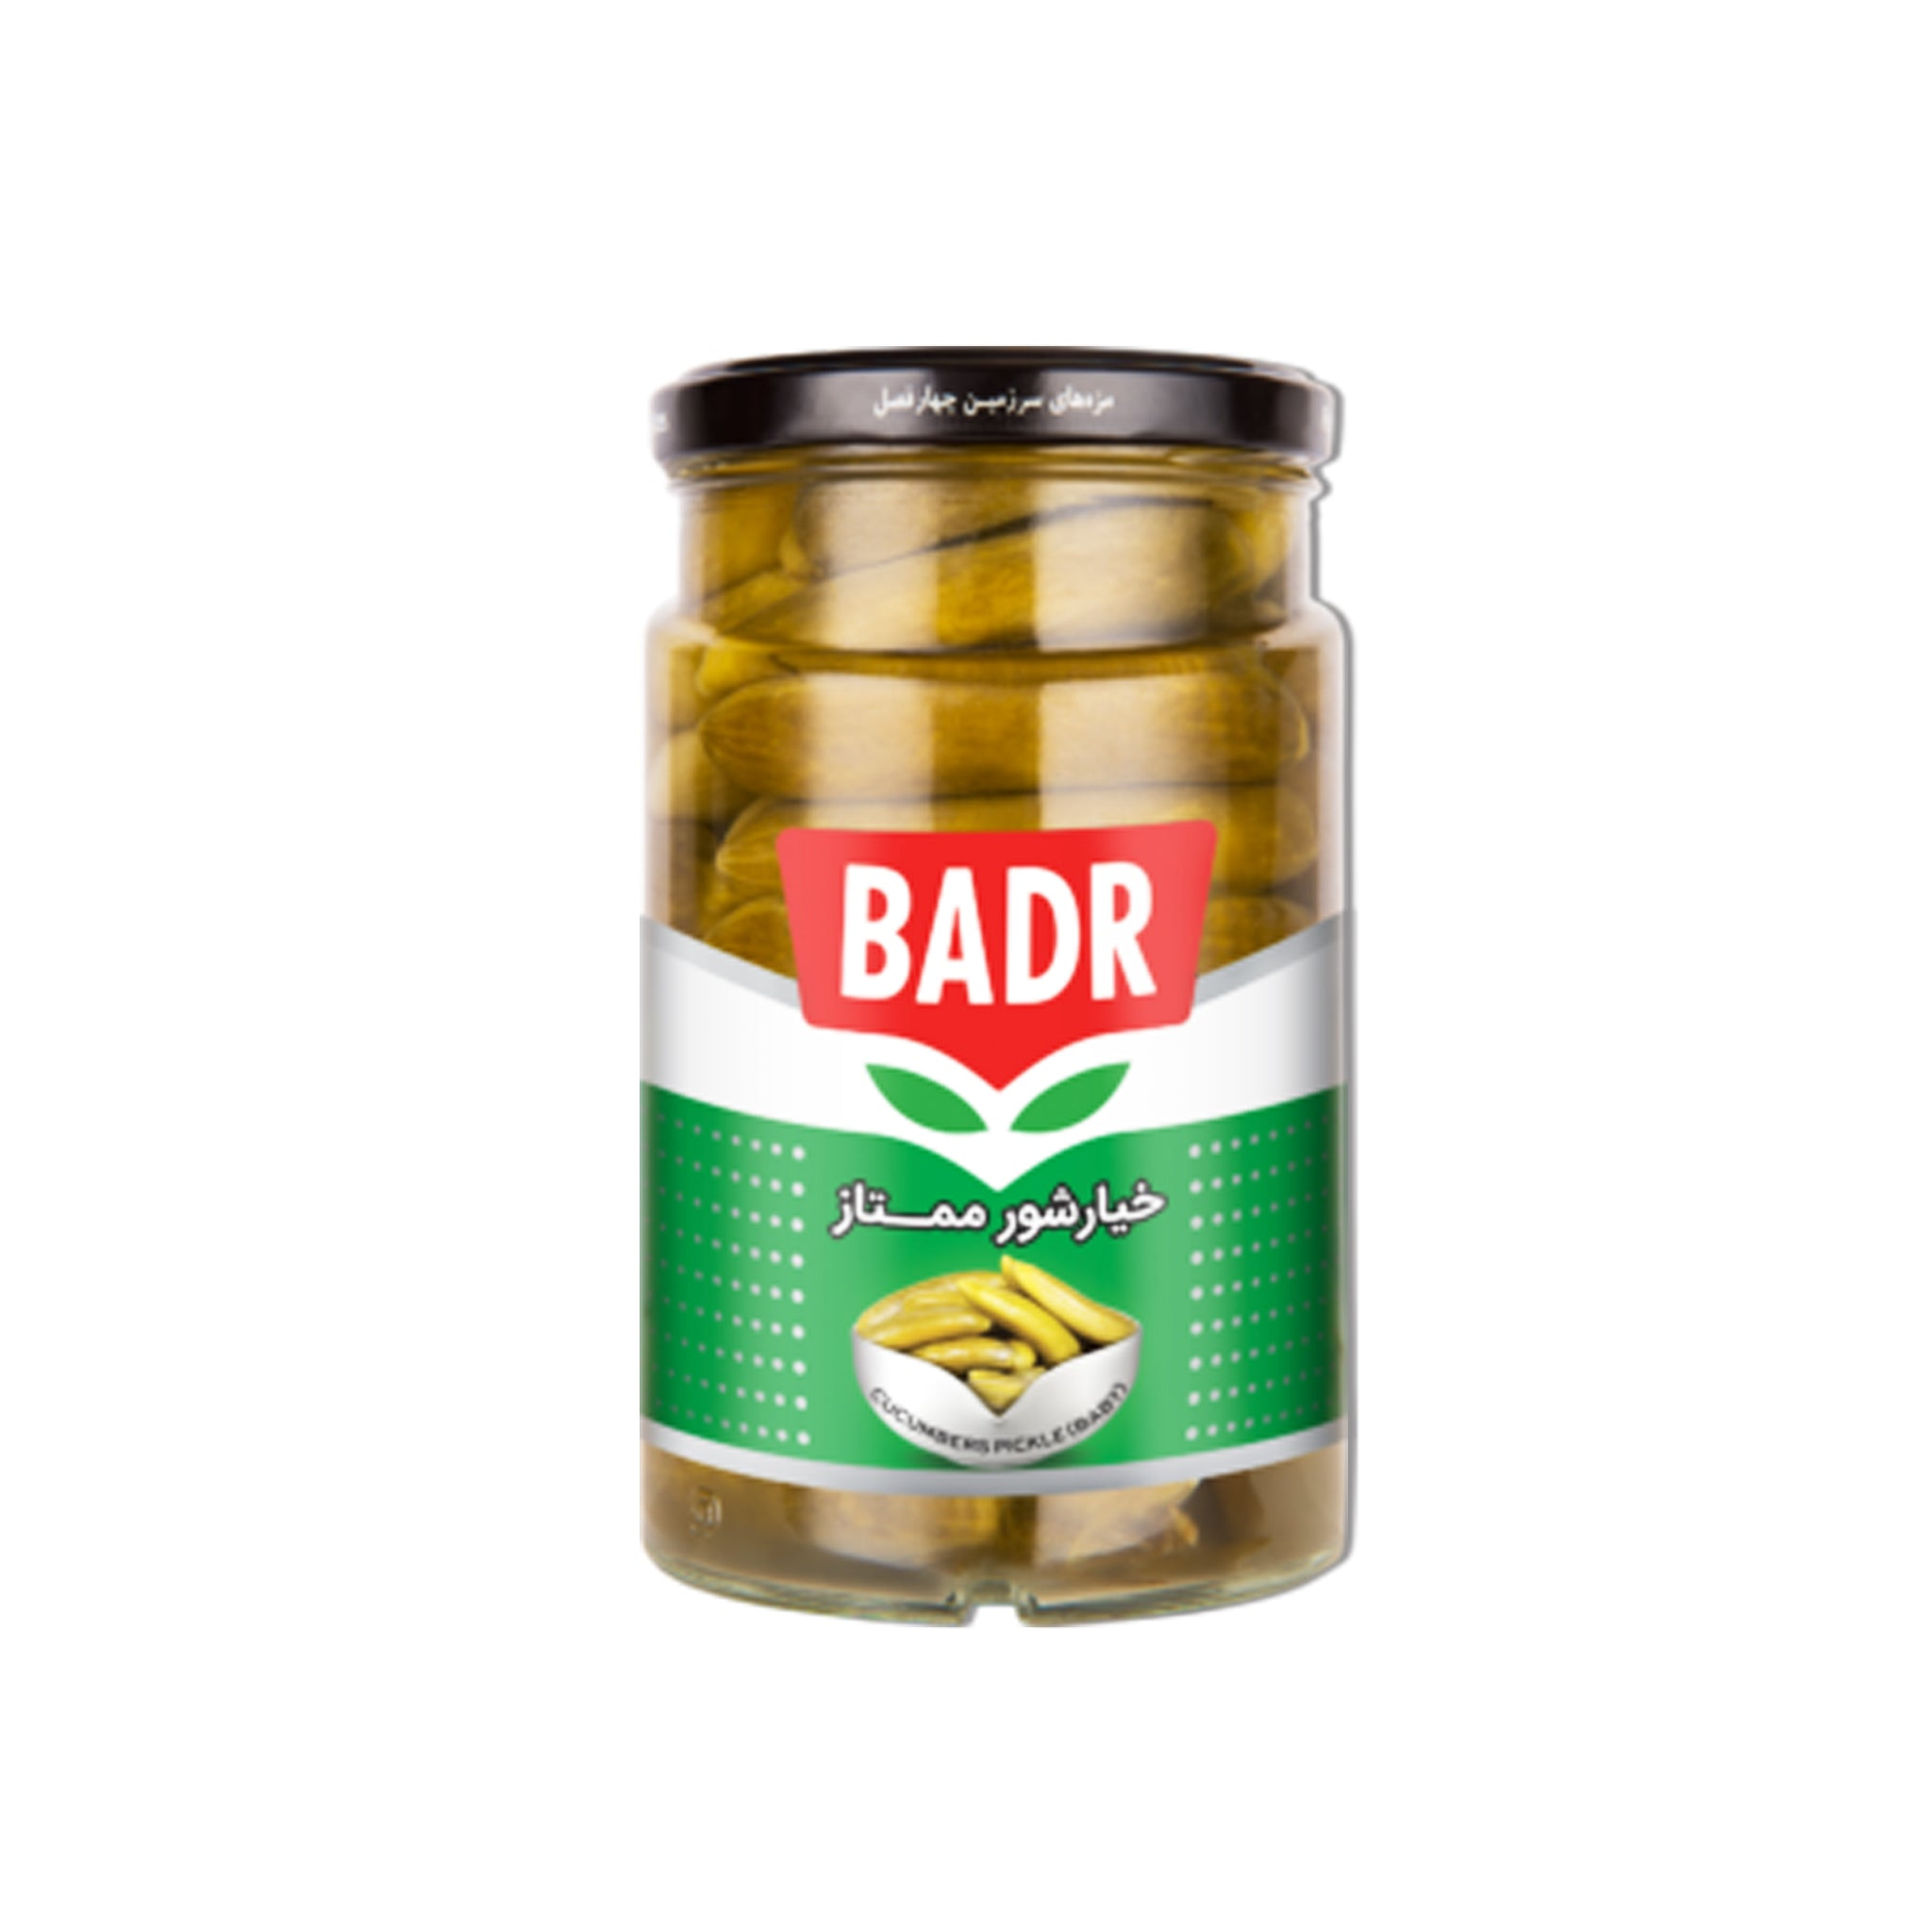 Badr Cucumber Pickle - خیارشور ممتاز